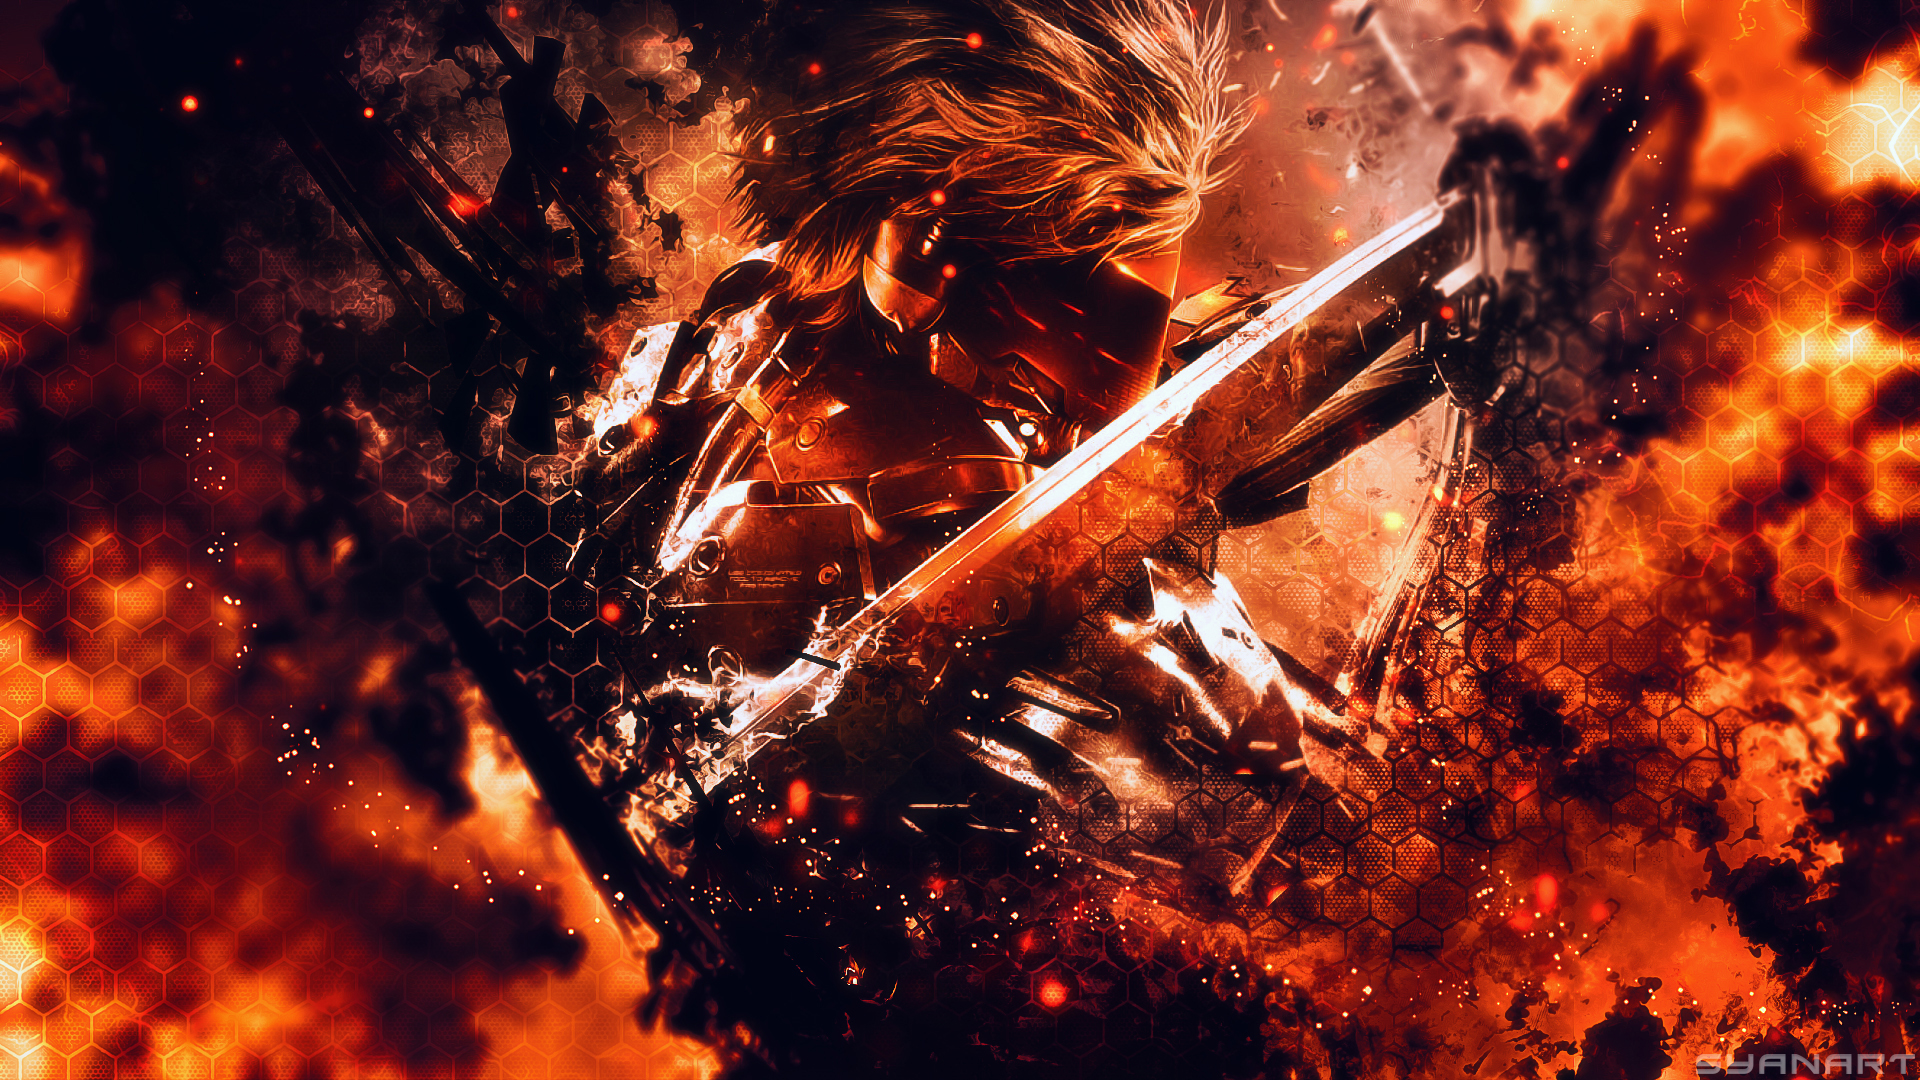 metal gear rising jack is up to play! wallpaper | syanart exclusive